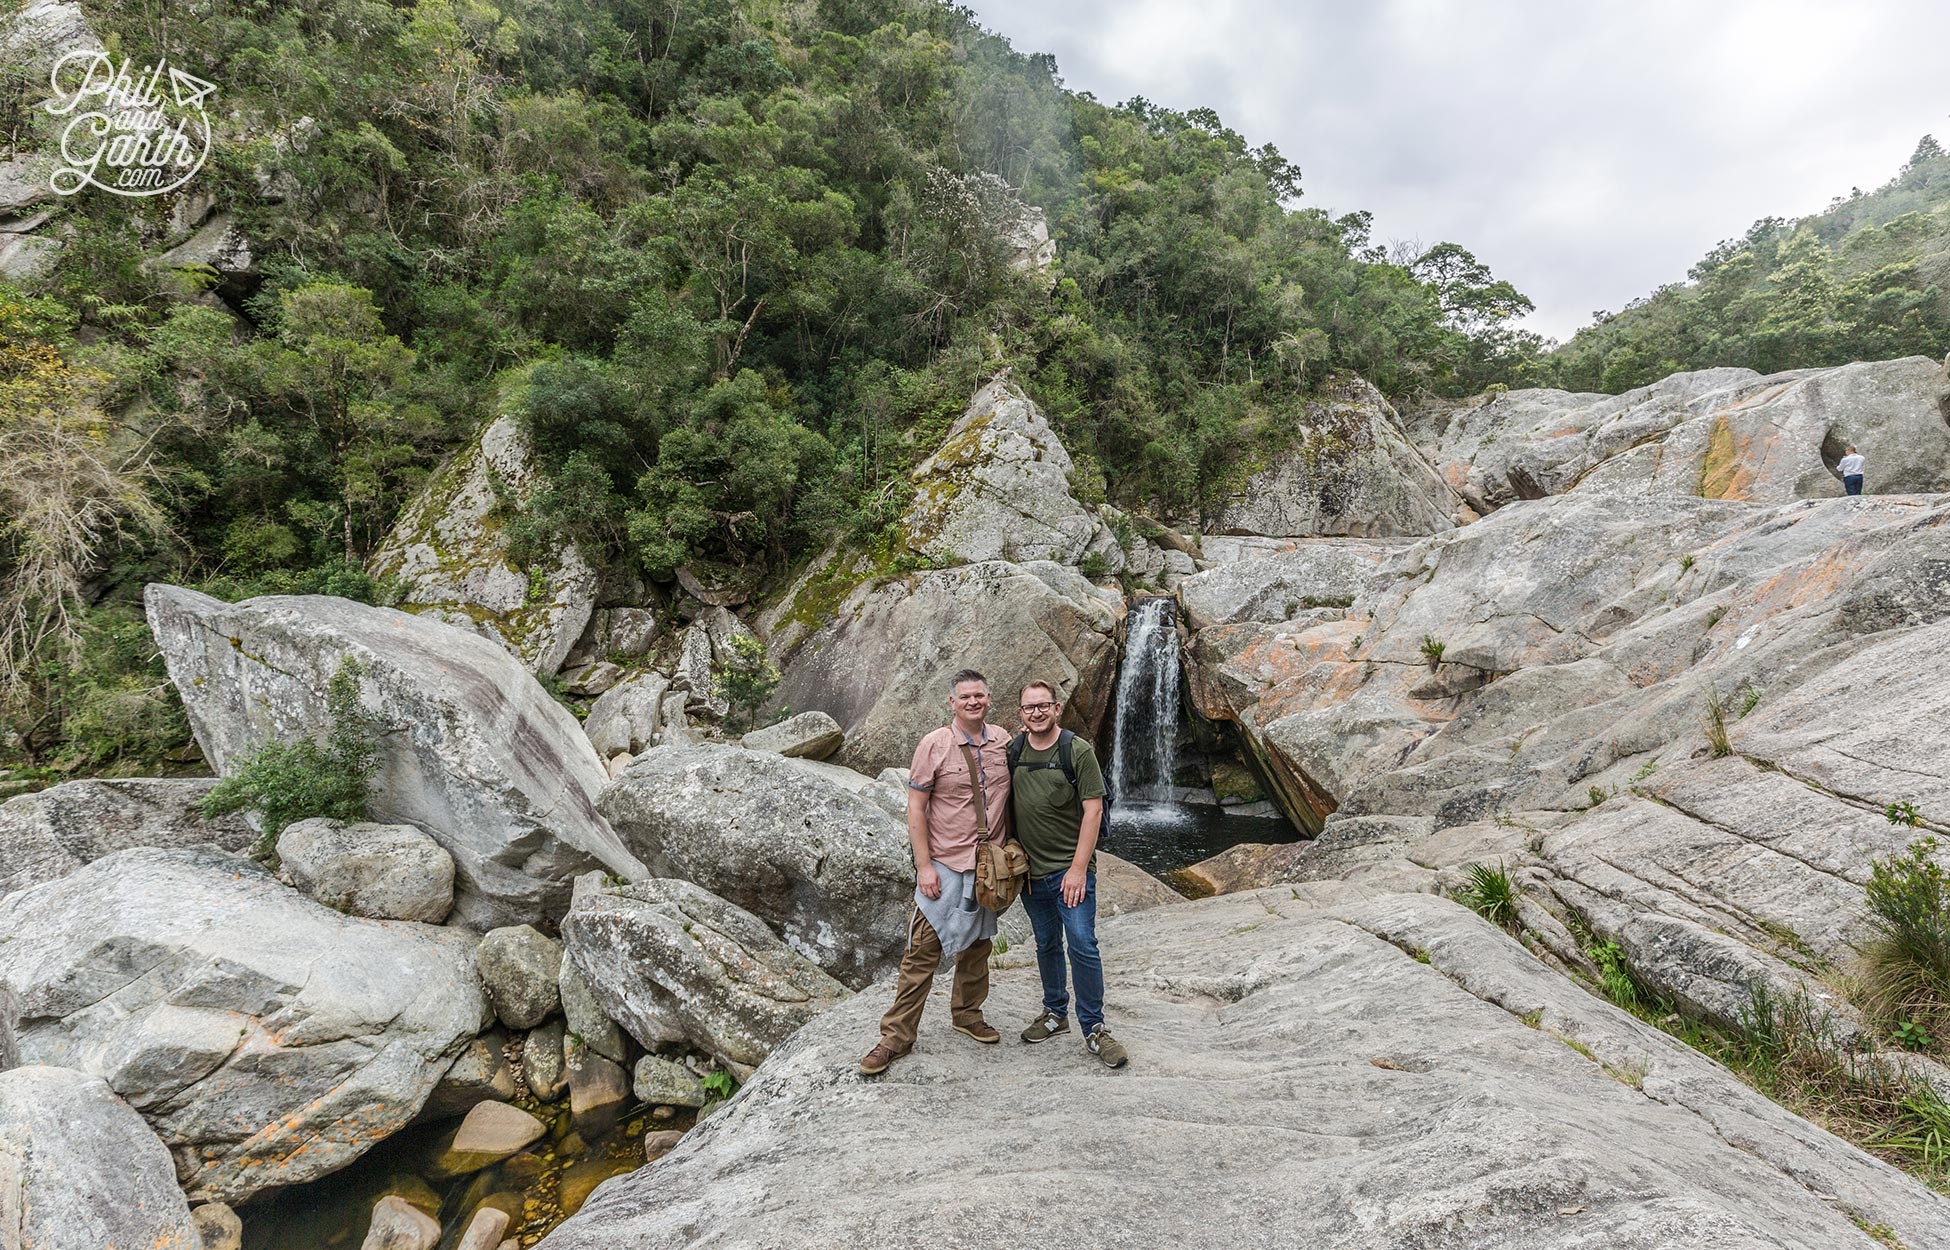 We finally made it to the waterfall at Wilderness National Park